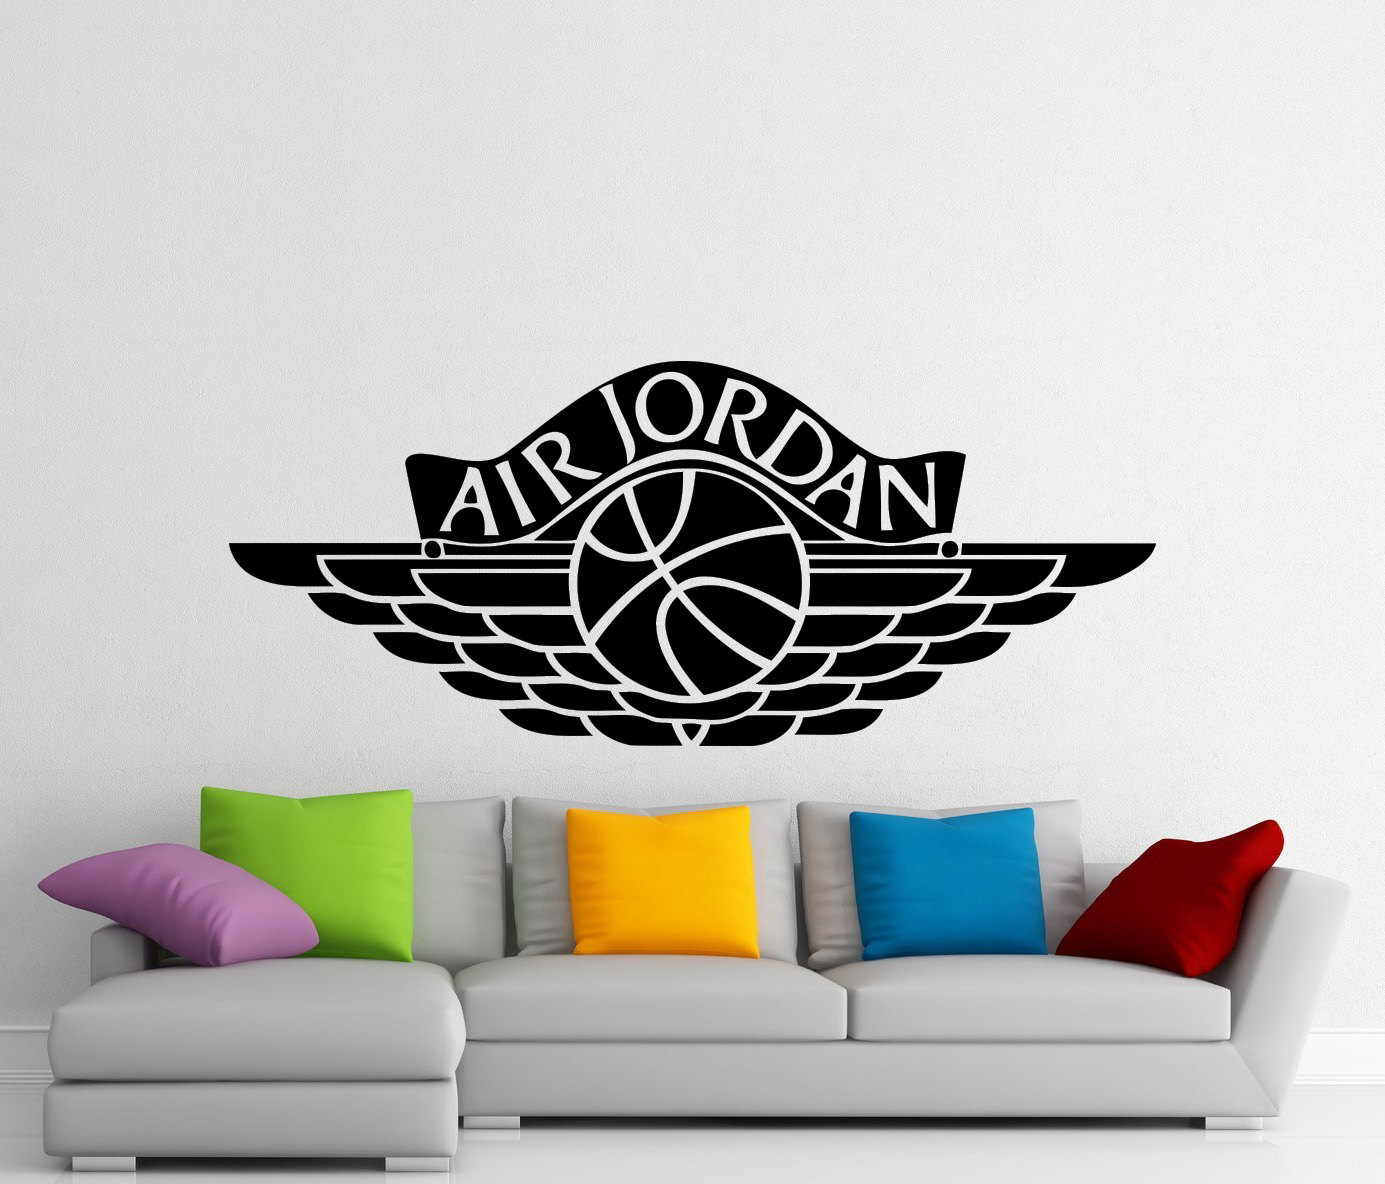 Sports Interiors Wall Murals Decals